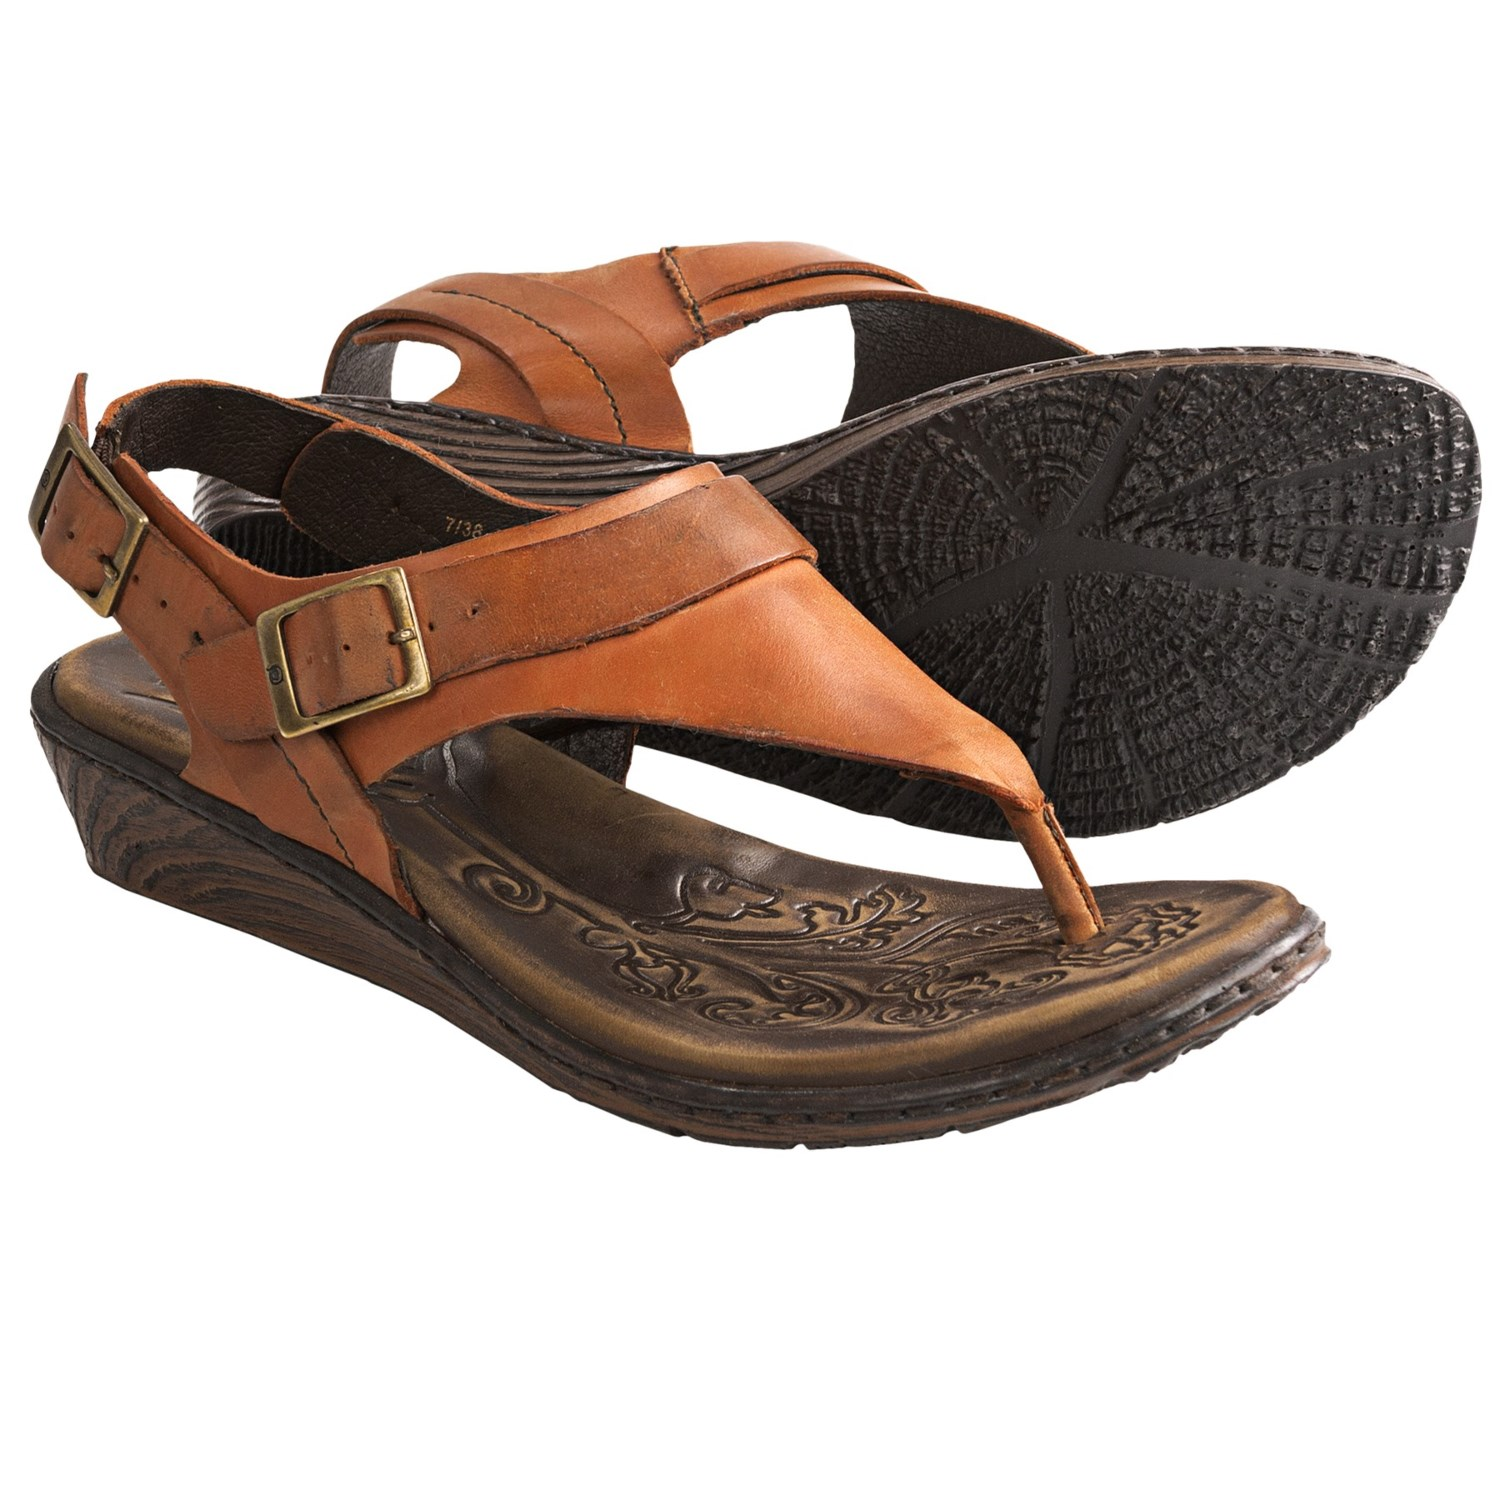 Simple  Born Esmeralda Casual Sandal Is Lightweight Flexible And Slip